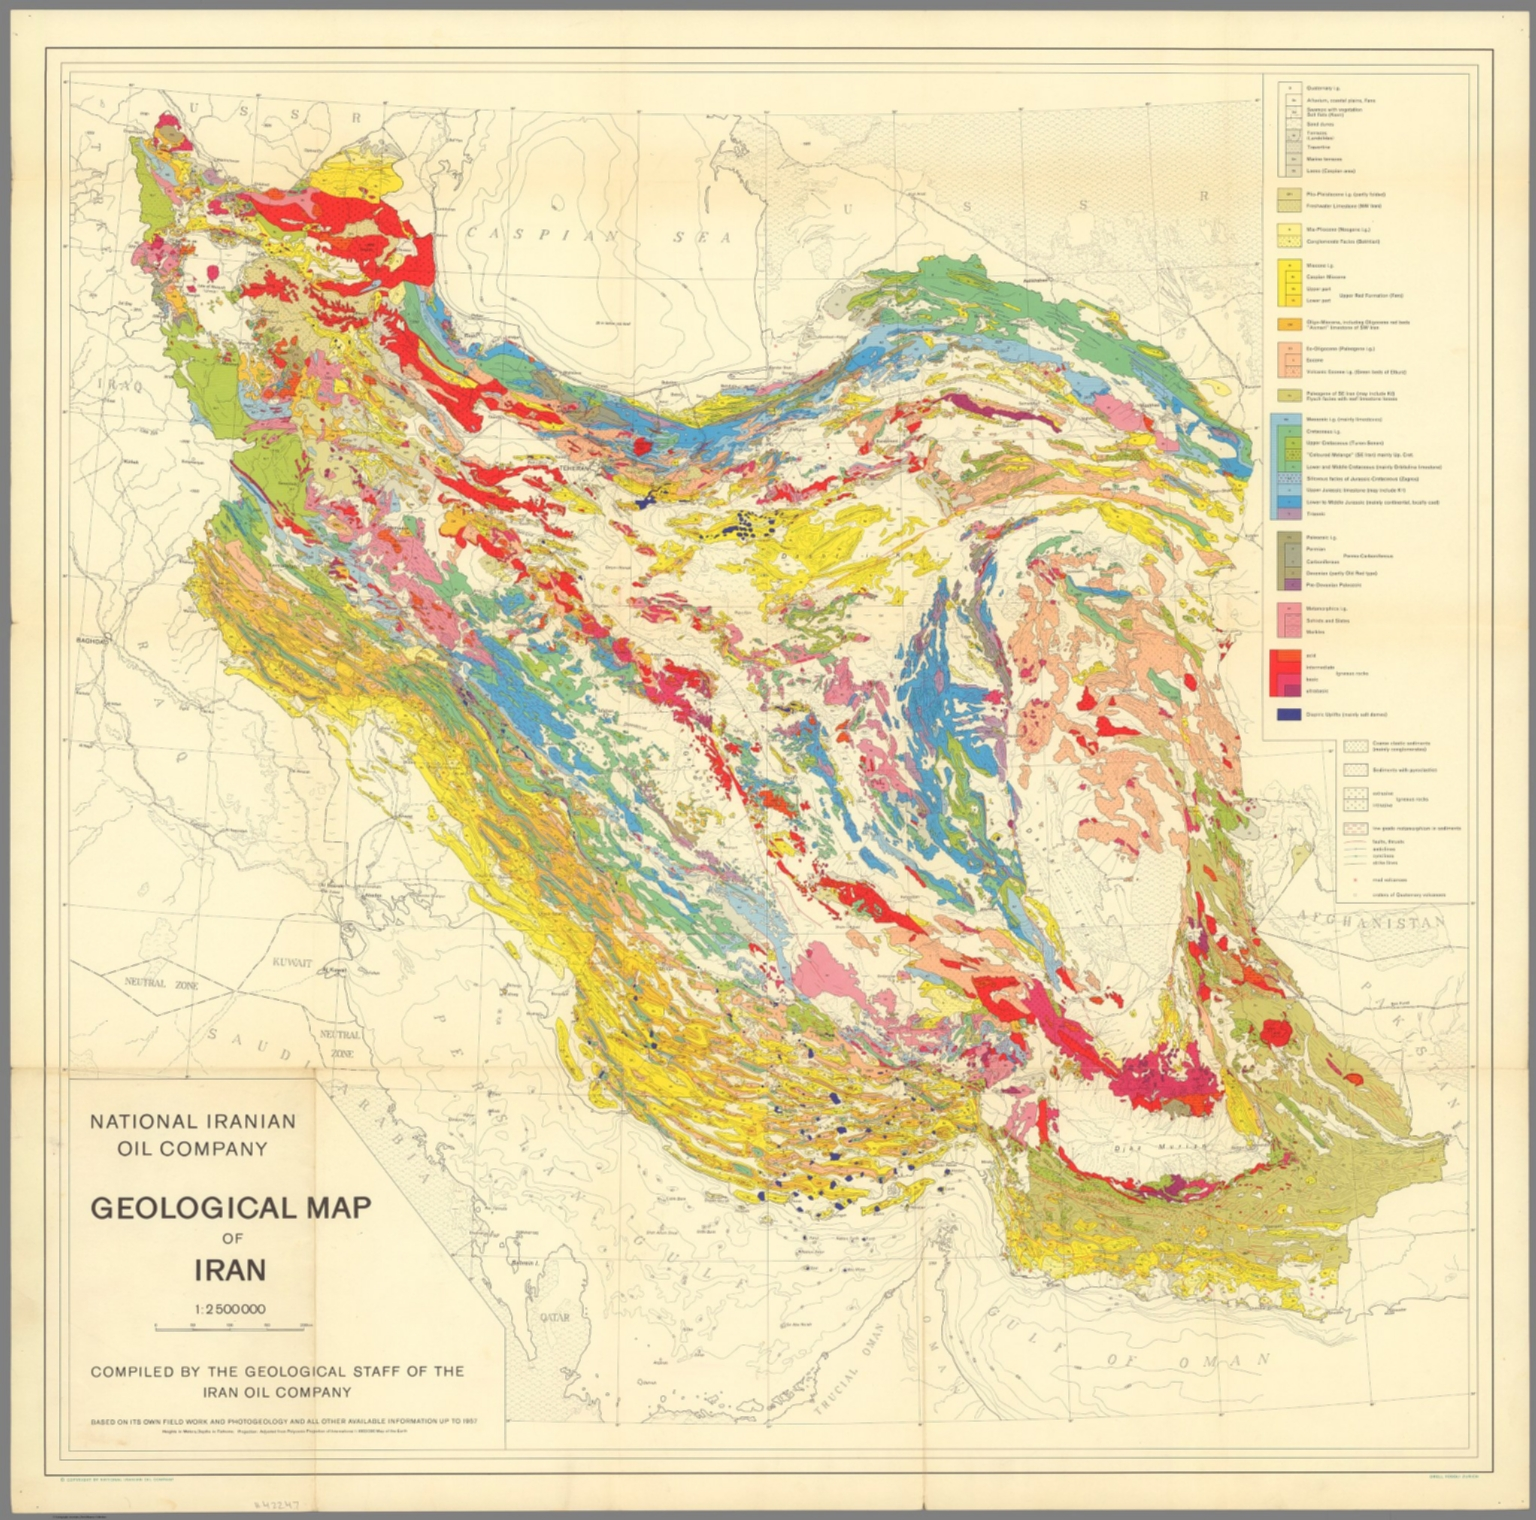 geological map of iran 12500000